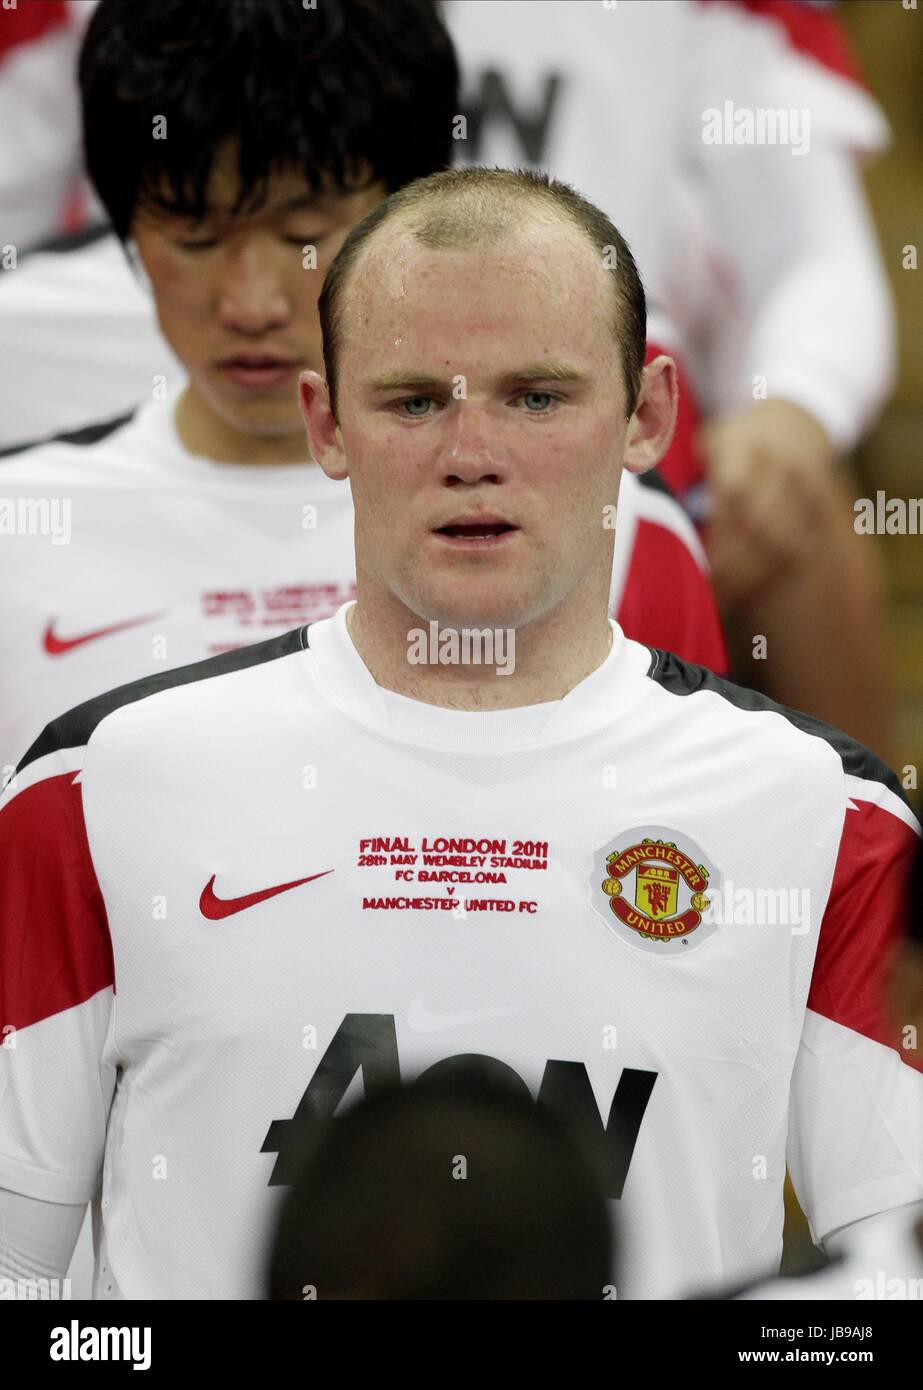 A TEARFUL WAYNE ROONEY, FC BARCELONA V MANCHESTER UTD, UEFA CHAMPIONS LEAGUE FINAL 2011, 2011 Stock Photo